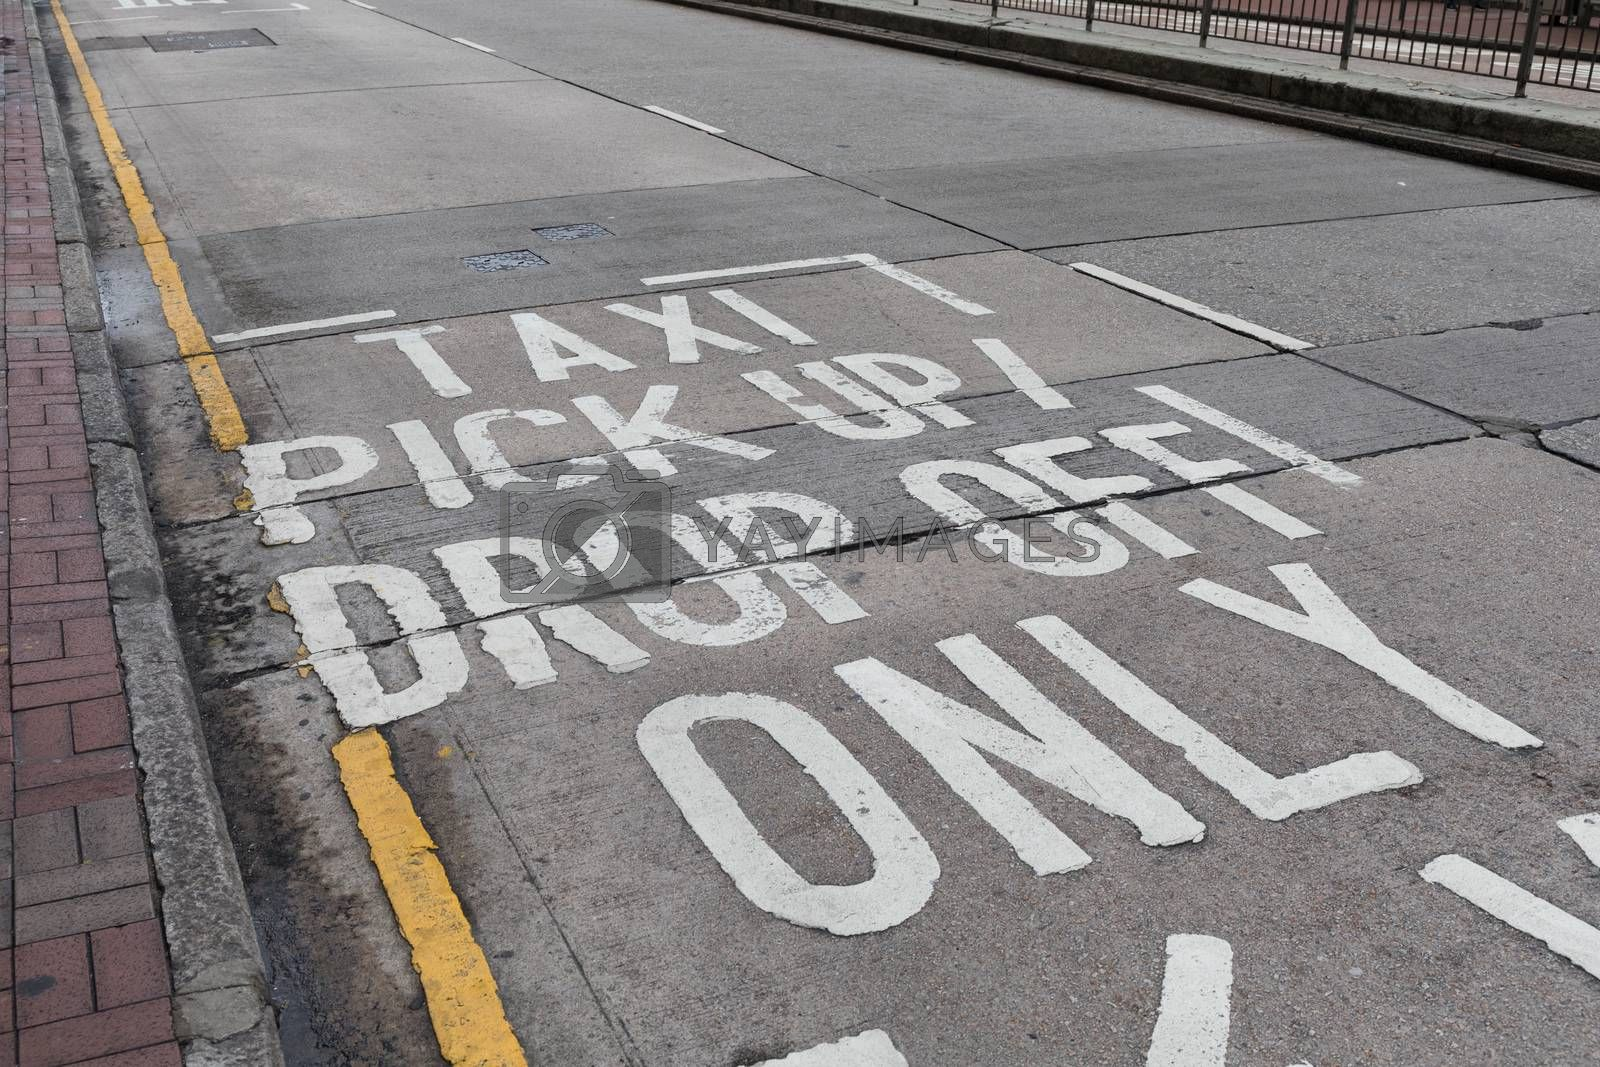 Taxi Pick Up and Drop Off Only Zone